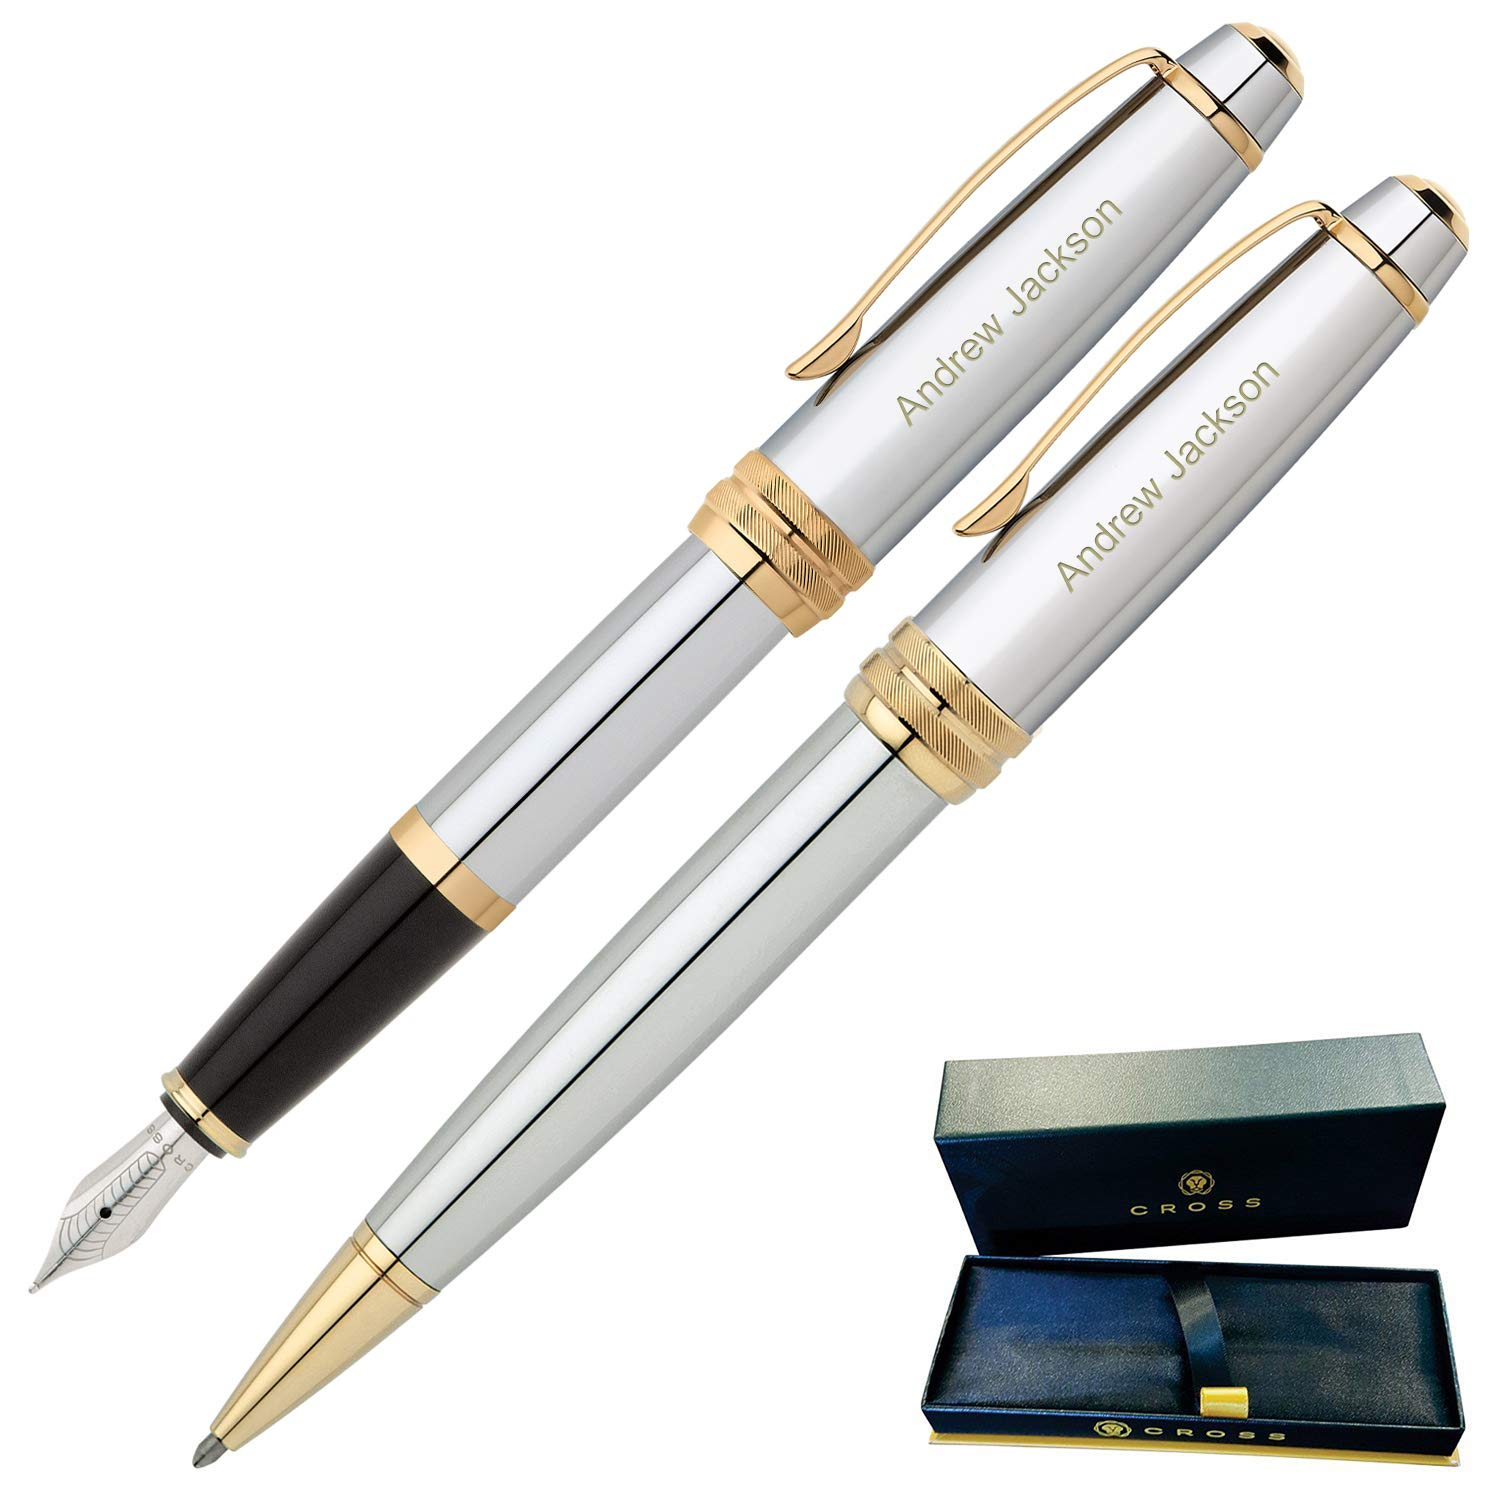 Dayspring Pens | Engraved/Personalized Cross Bailey Medalist Ballpoint and Fountain Gift Pen Set. Custom Engraved Case Included by Dayspring Pens (Image #2)